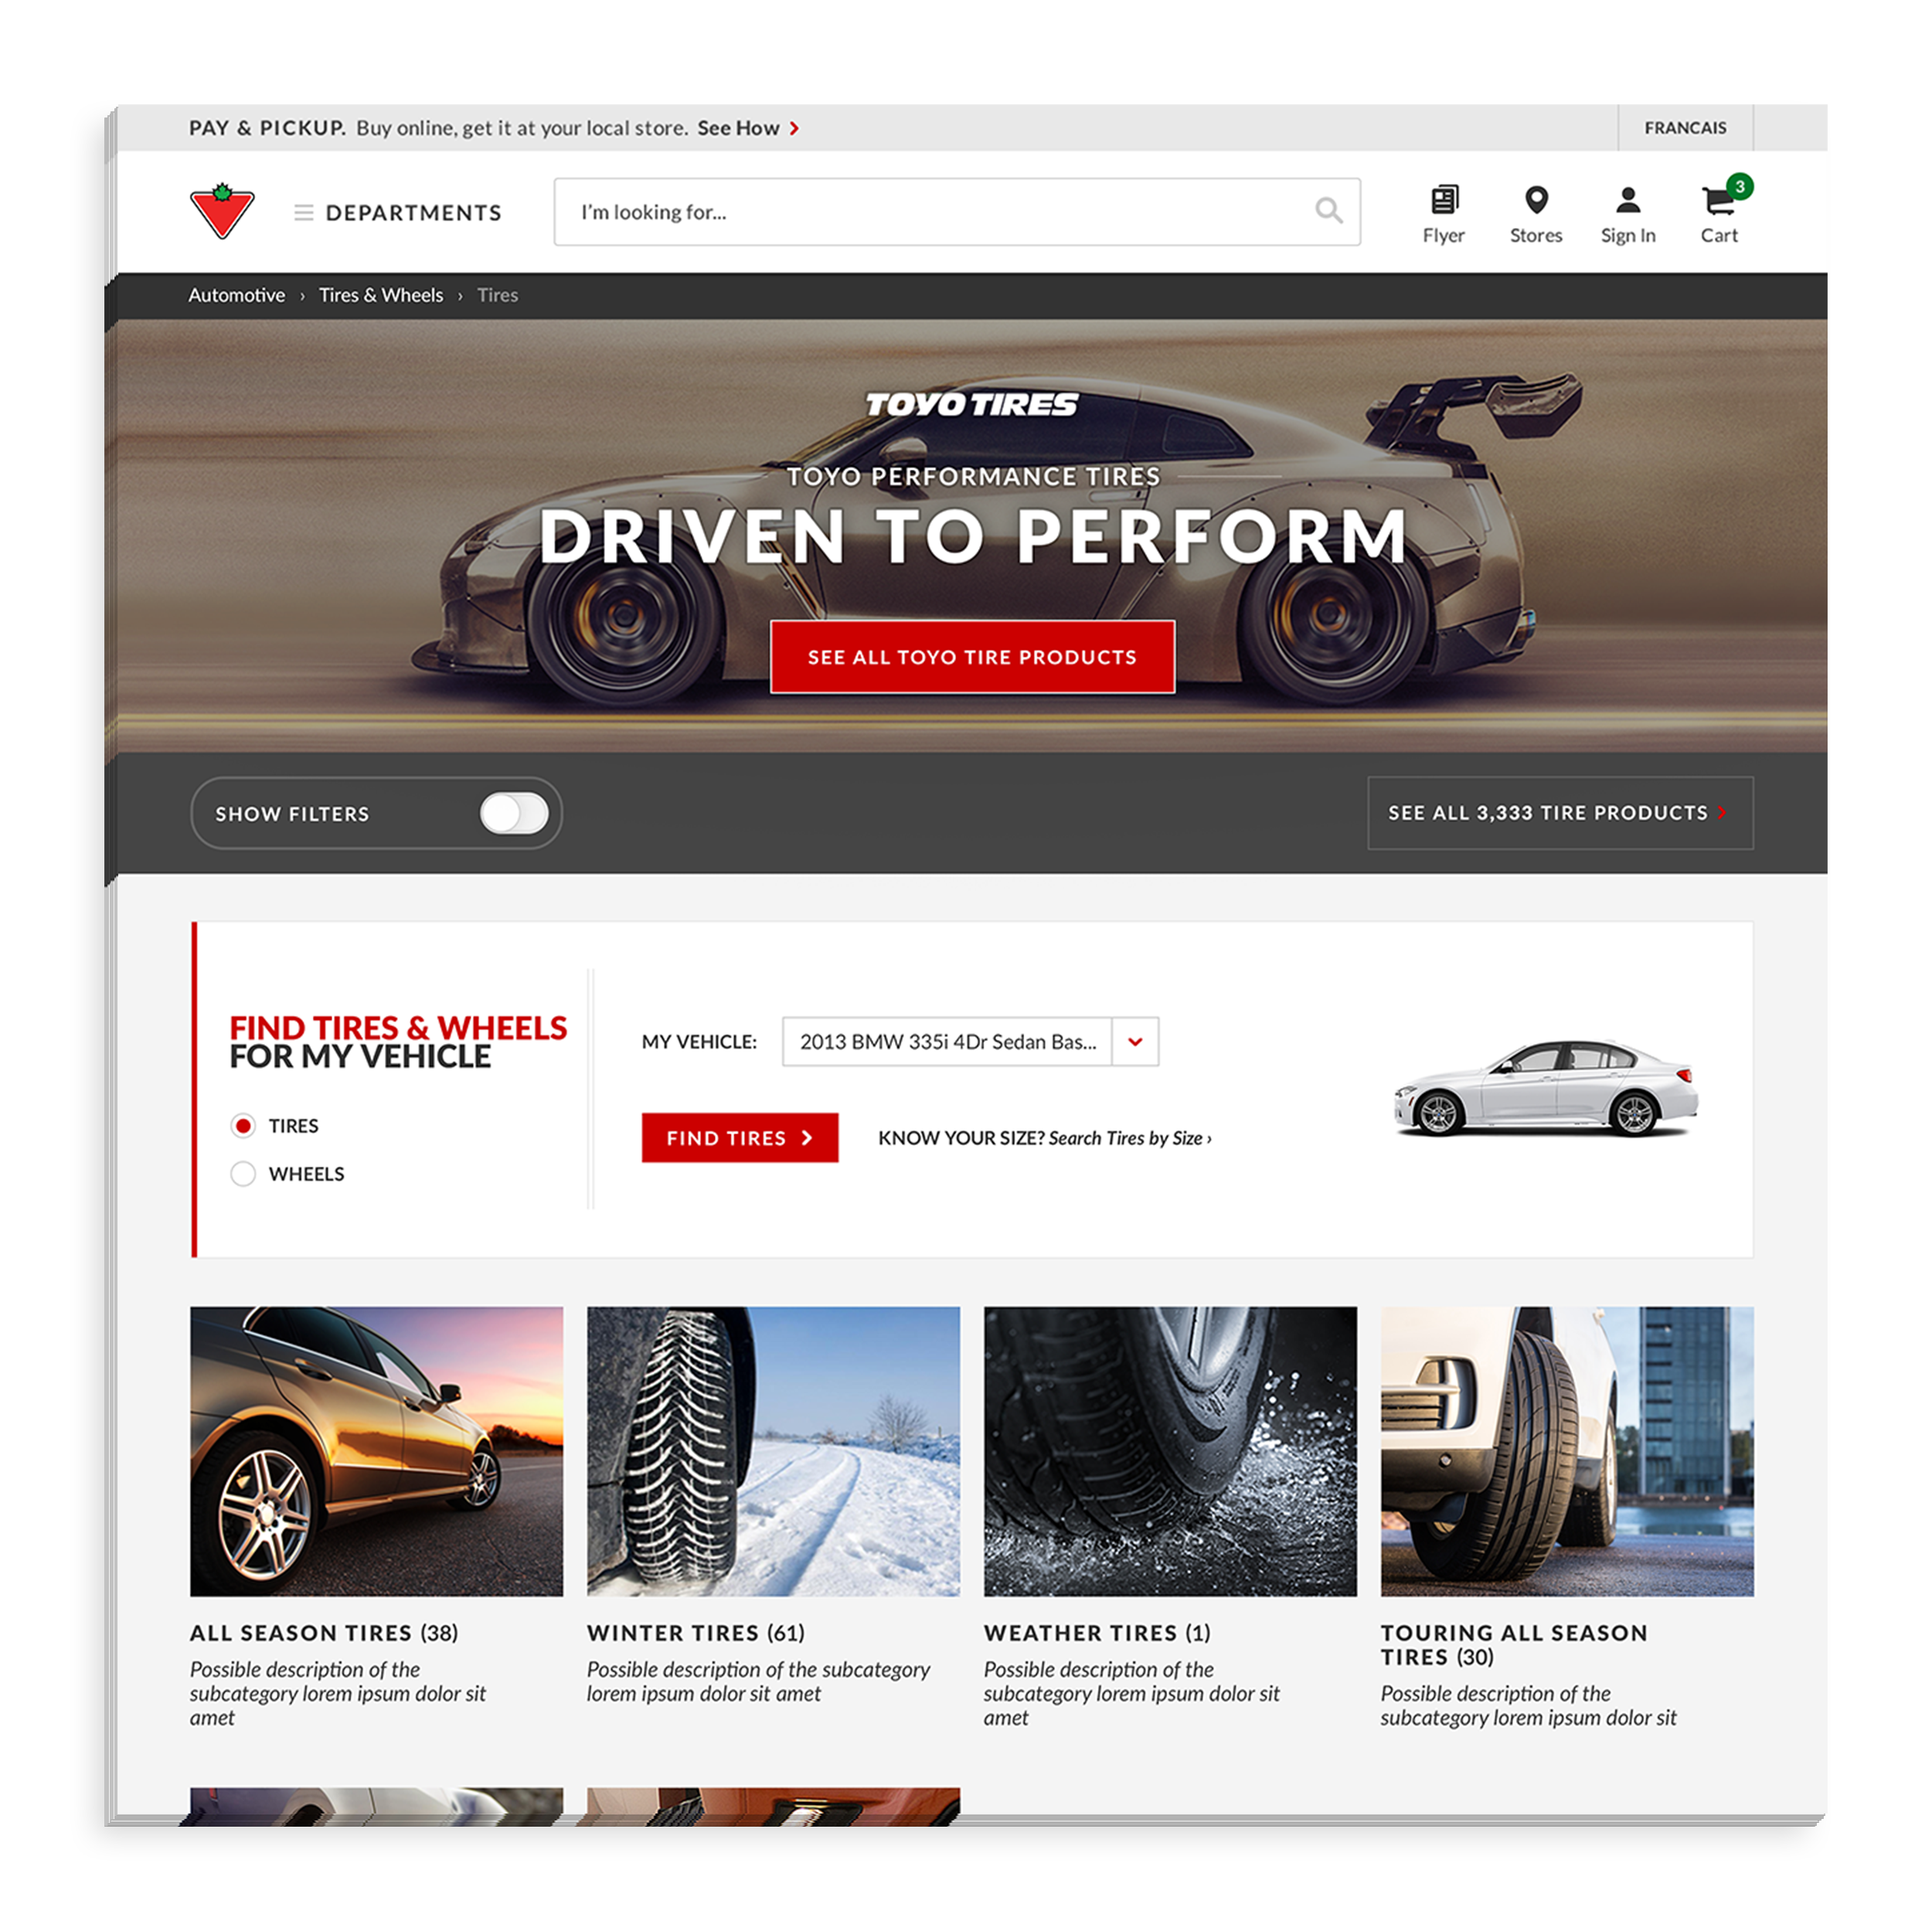 - The tire-finder tool allows Canadian Tire users to select wheels and tires for their vehicles even if they don't know their tire dimensions by inserting their car type, year, make, and model., They can also save the vehicle settings for future use.